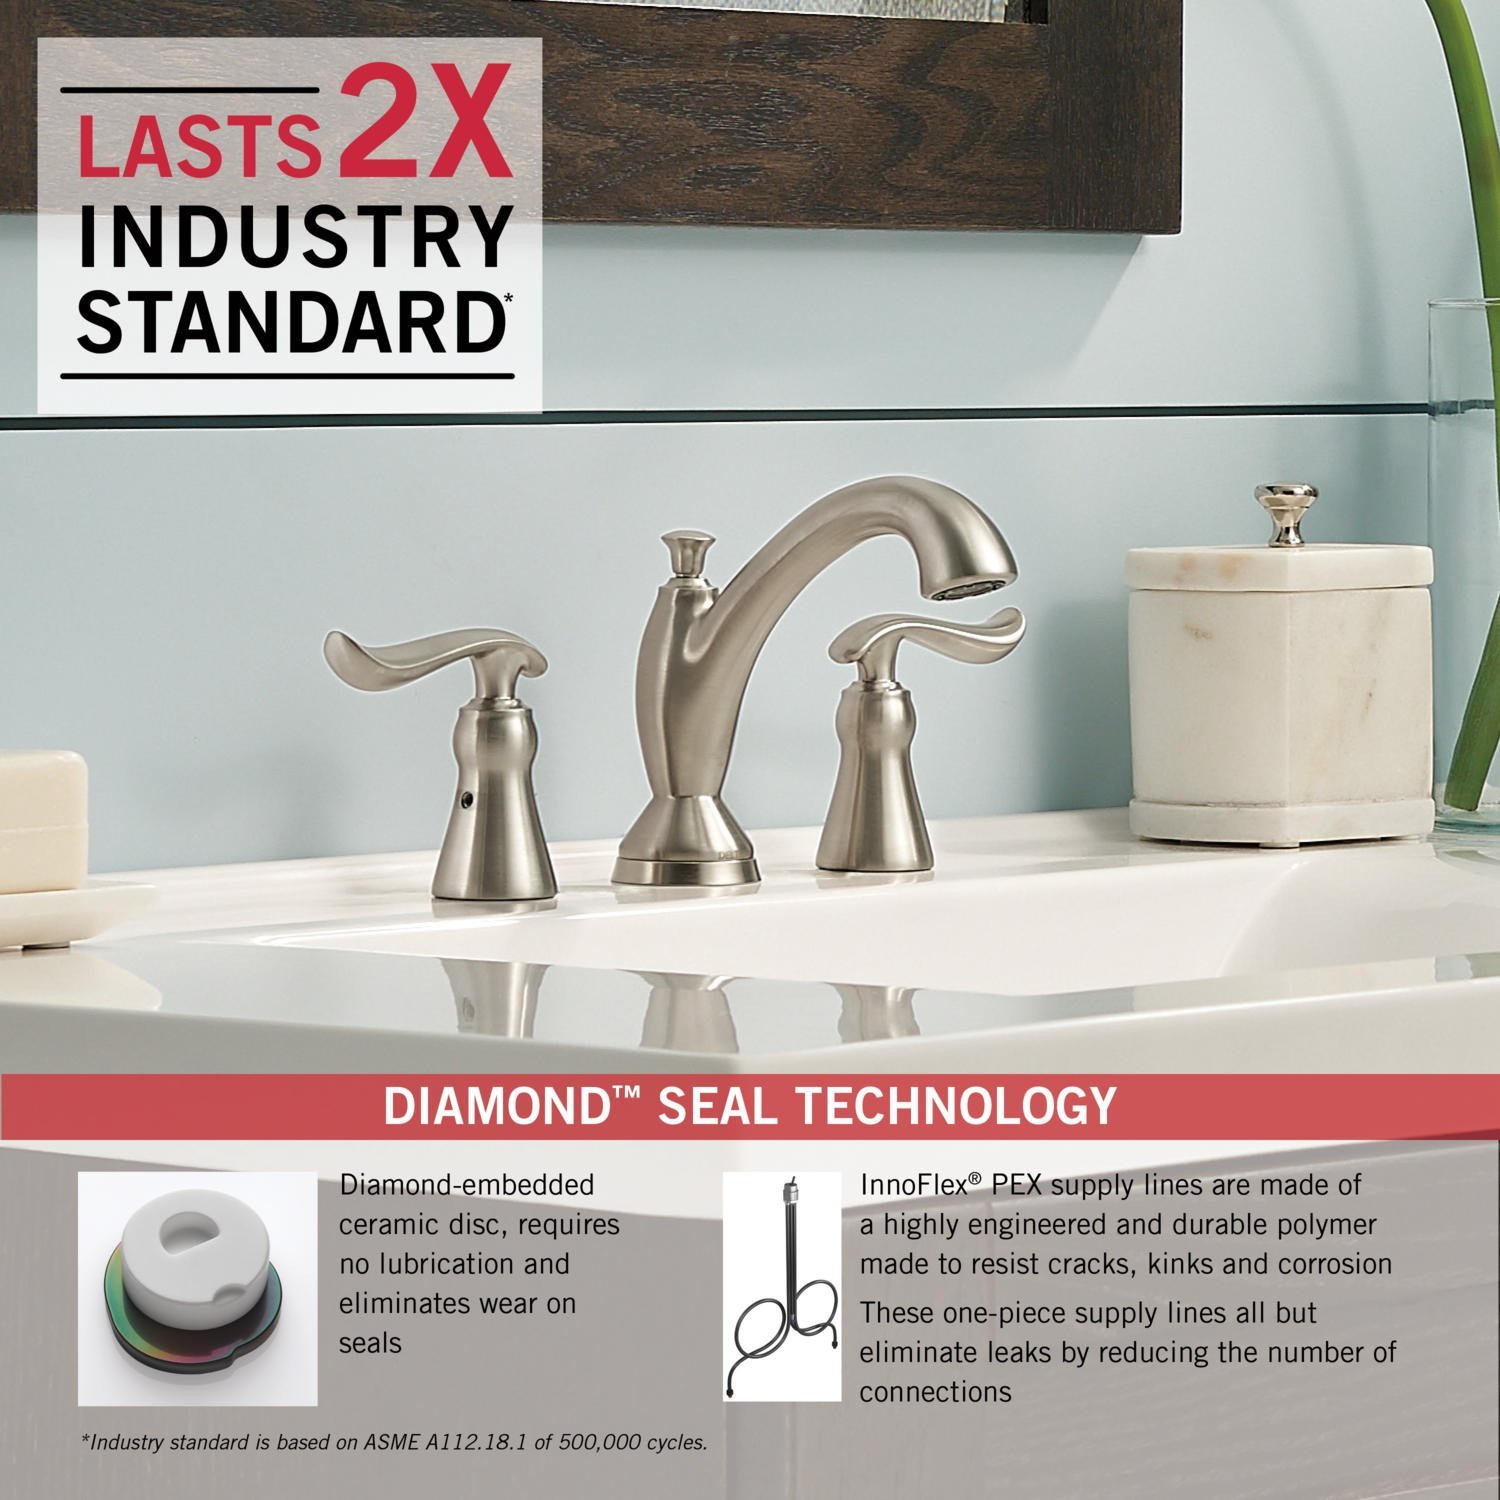 Delta 3594-SSMPU-DST Linden 2-Handle Widespread Bathroom Faucet with Diamond Seal Technology and Metal Drain Assembly, Stainless by DELTA FAUCET (Image #3)